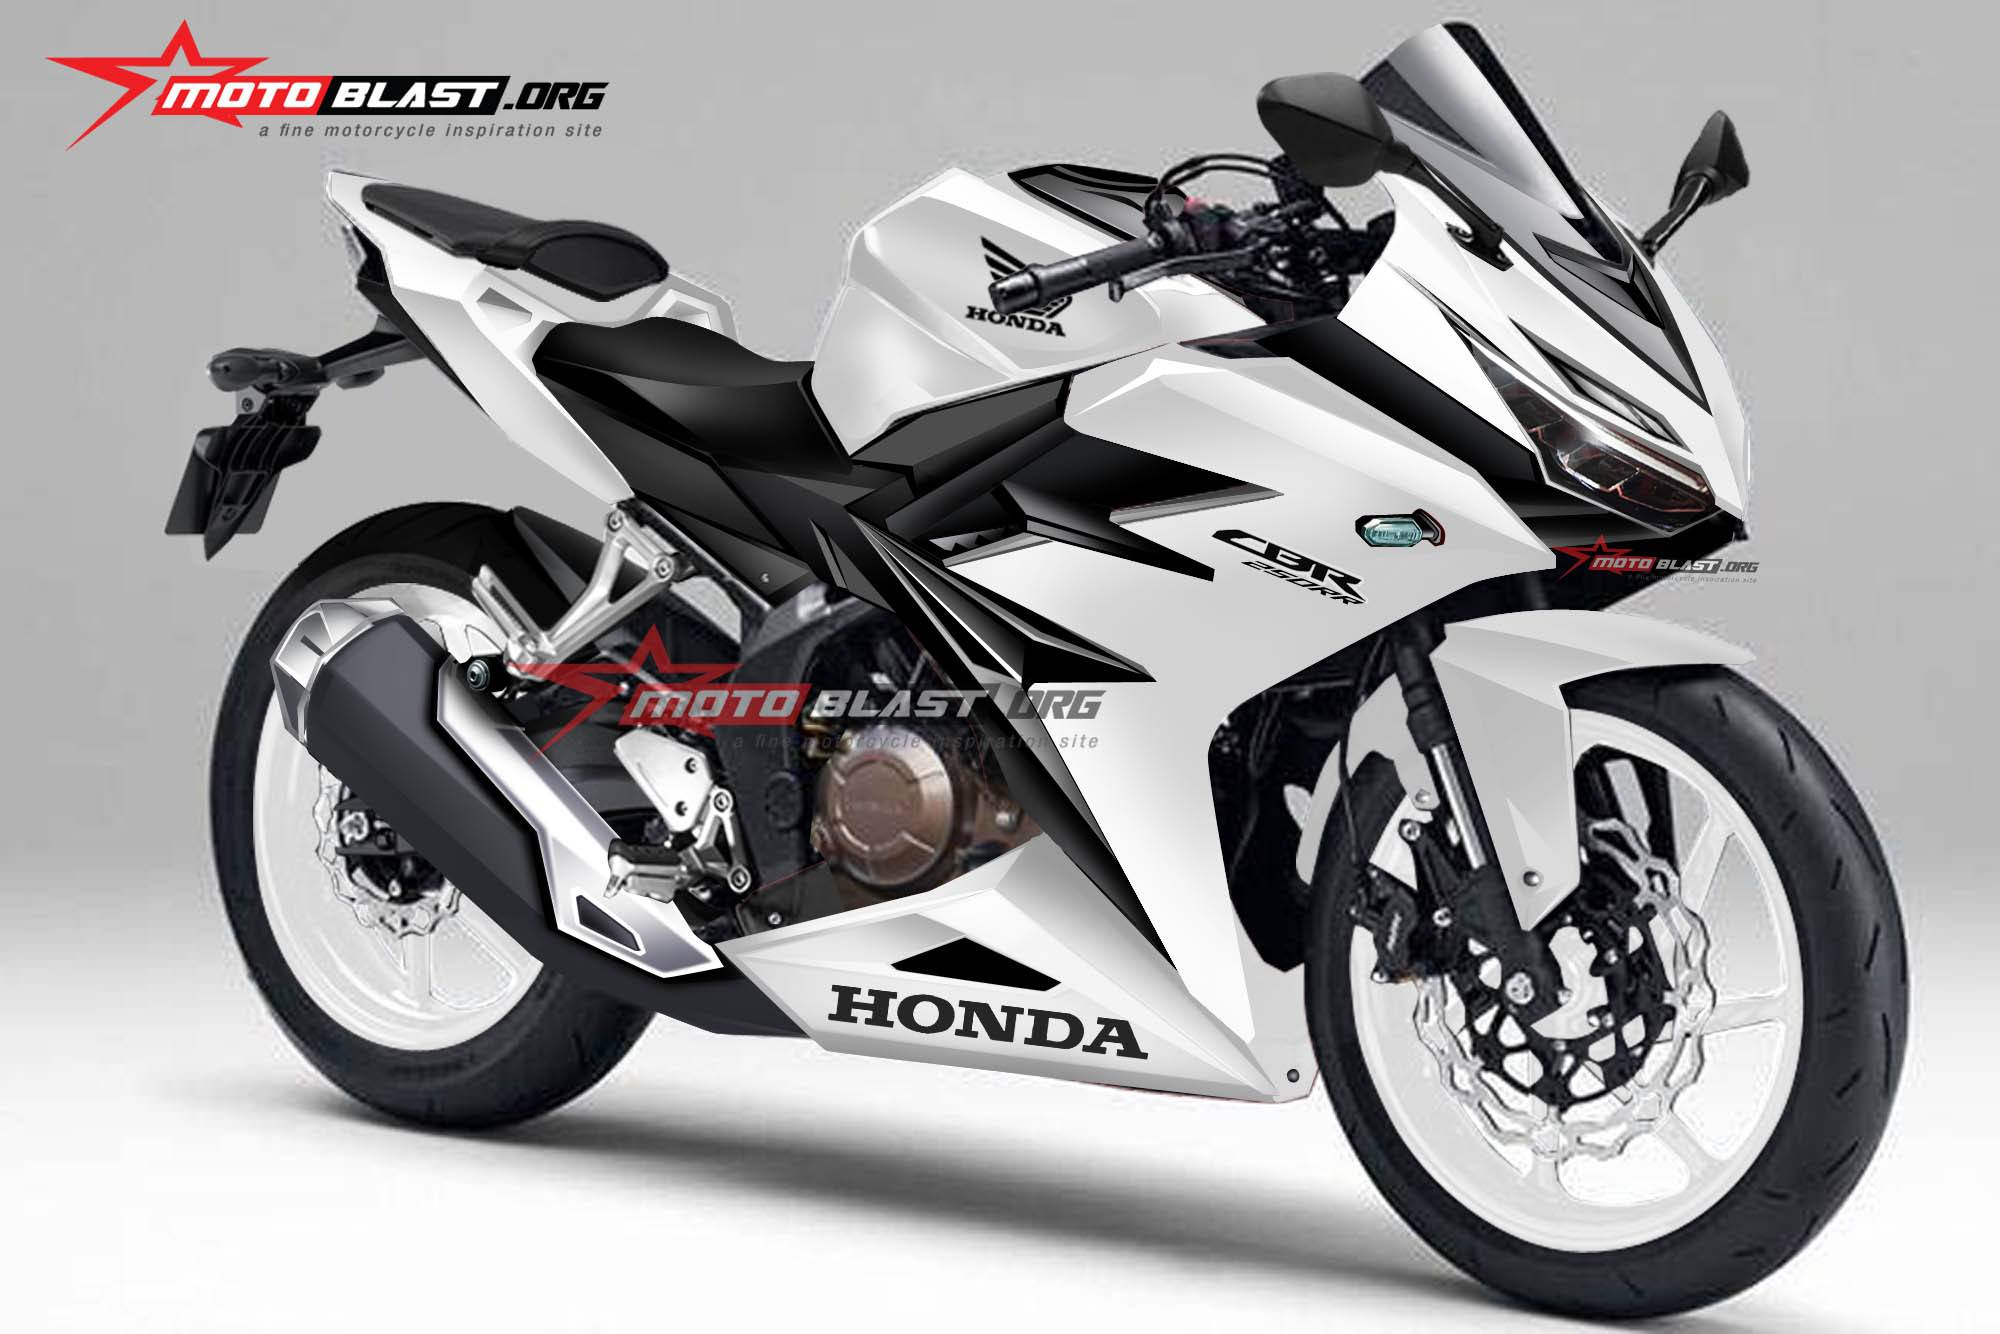 Honda 929 Cbr Rr All New Car Release And Reviews Xl 350 Wiring Diagram 2017 Pictures Could This Be The